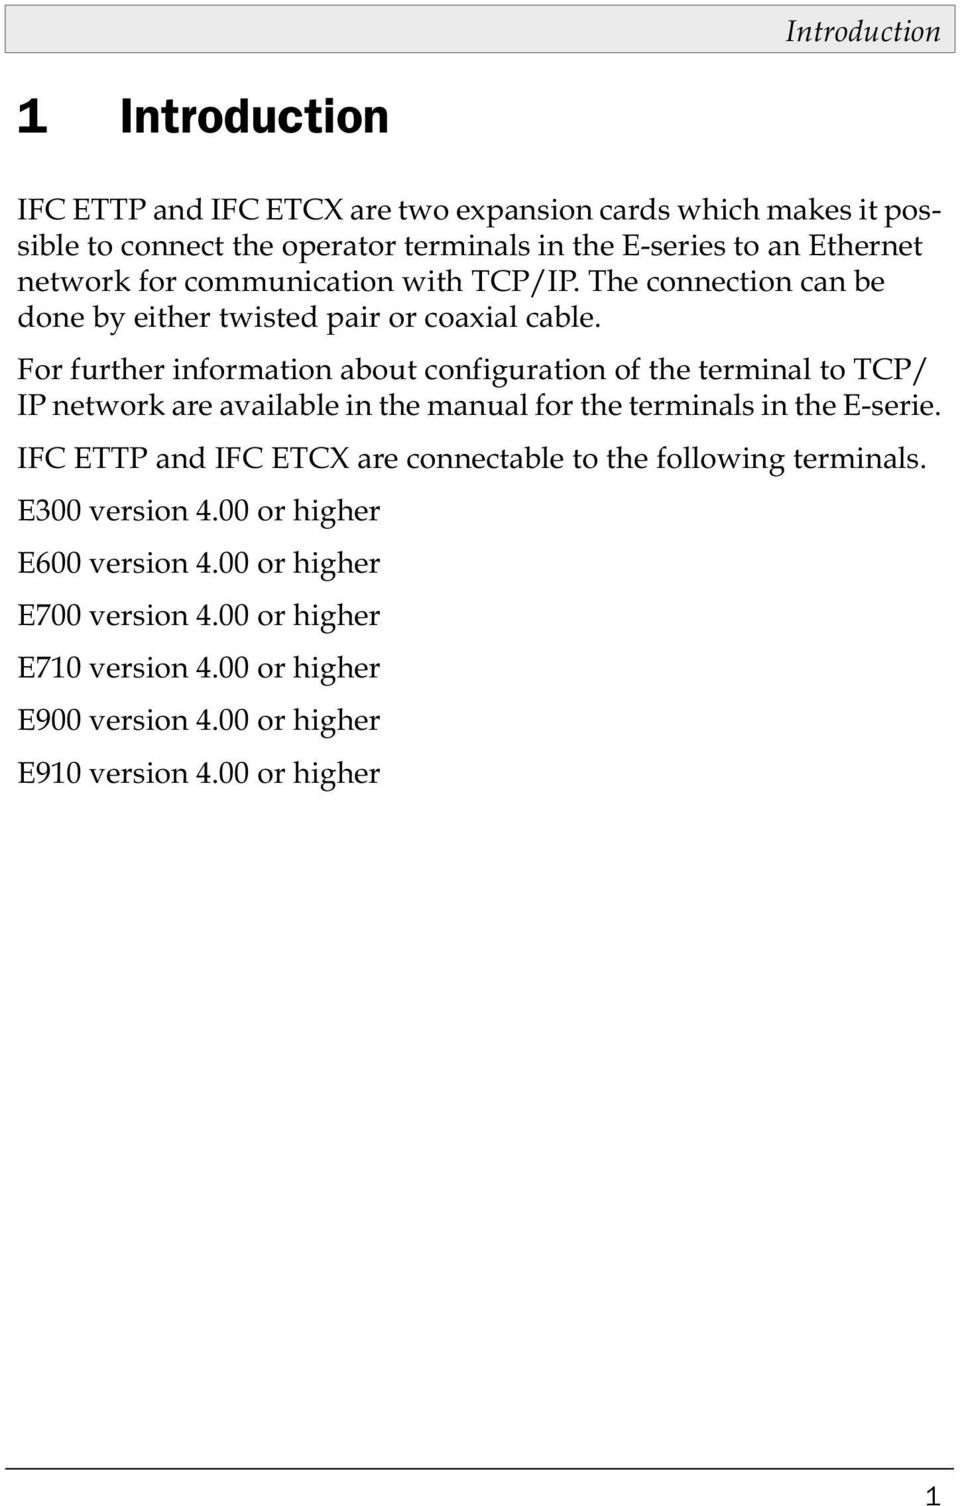 For further information about configuration of the terminal to TCP/ IP network are available in the manual for the terminals in the E-serie.